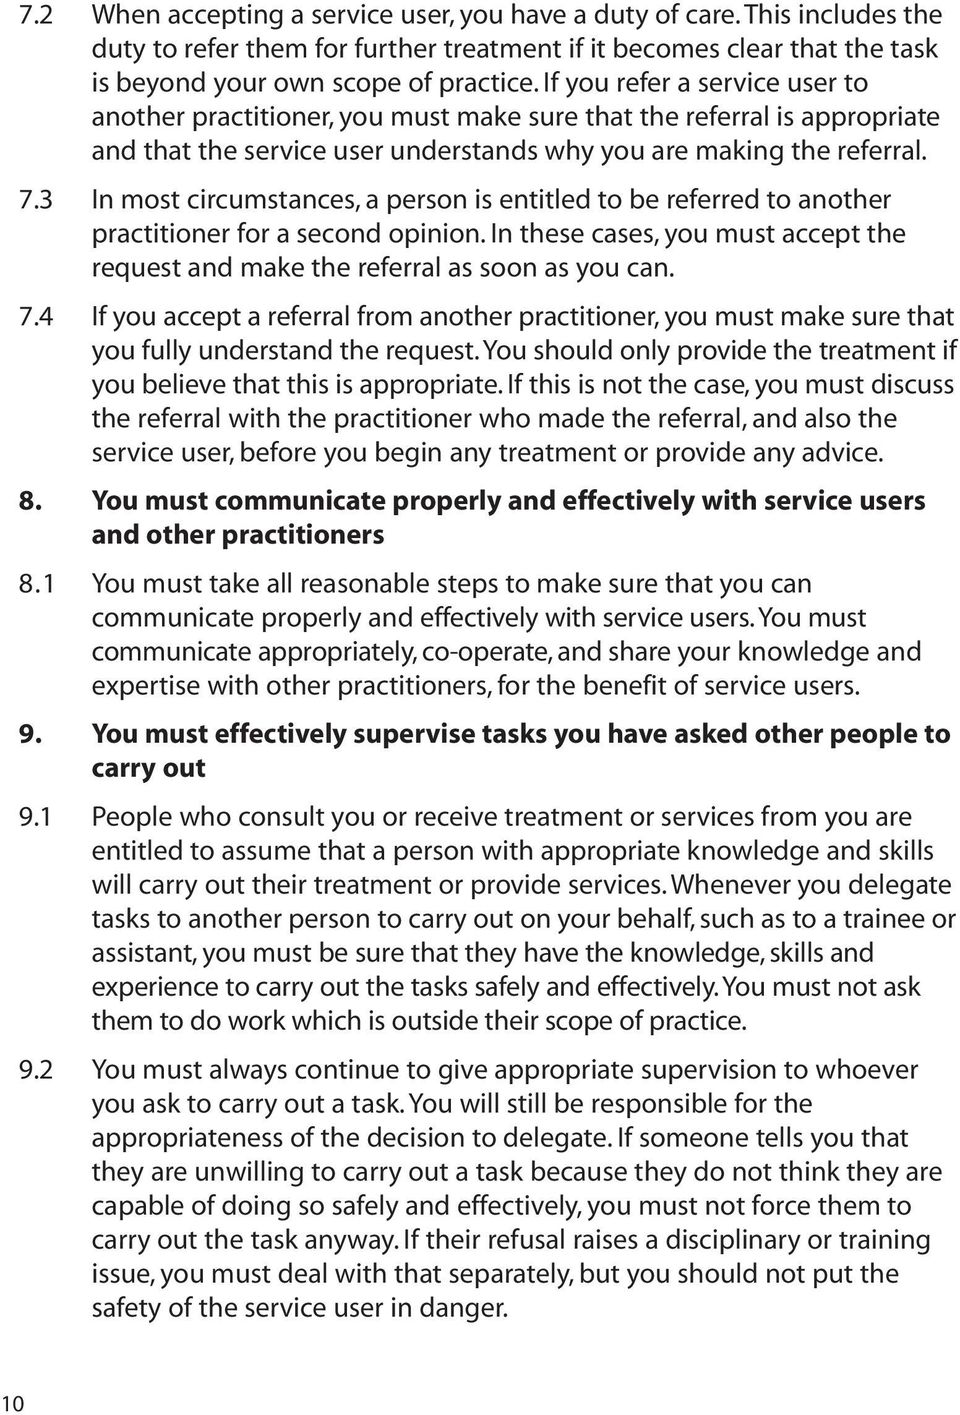 3 In most circumstances, a person is entitled to be referred to another practitioner for a second opinion. In these cases, you must accept the request and make the referral as soon as you can. 7.